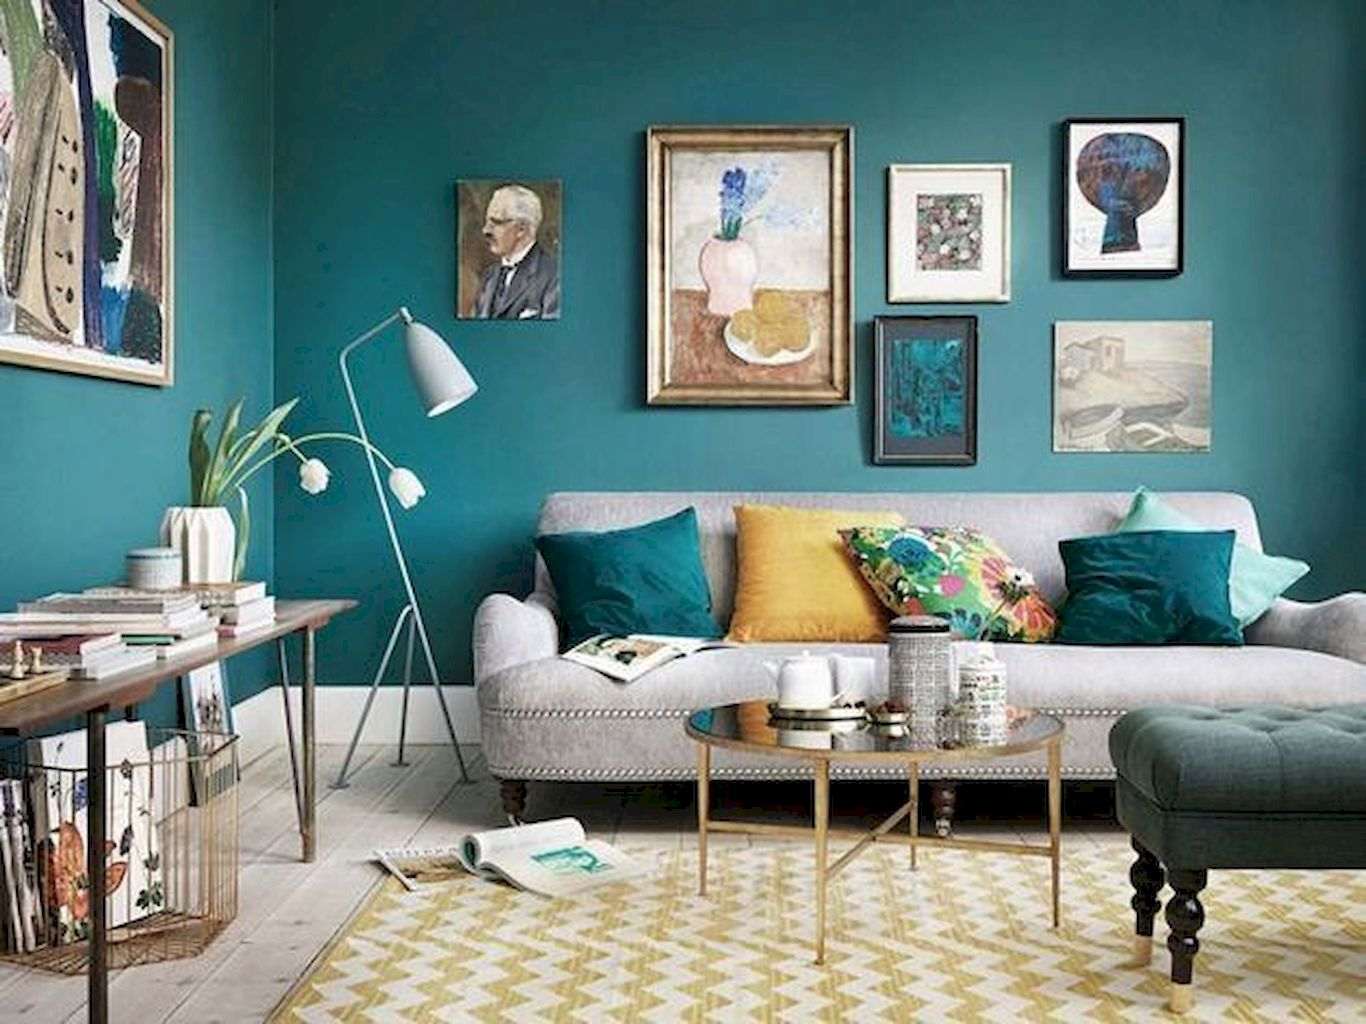 https://elonahome.com/wp-content/uploads/2019/01/Best-Colorful-Home-Inspirations-in-Cheerful-Decorating-Concepts-Part-37.jpg